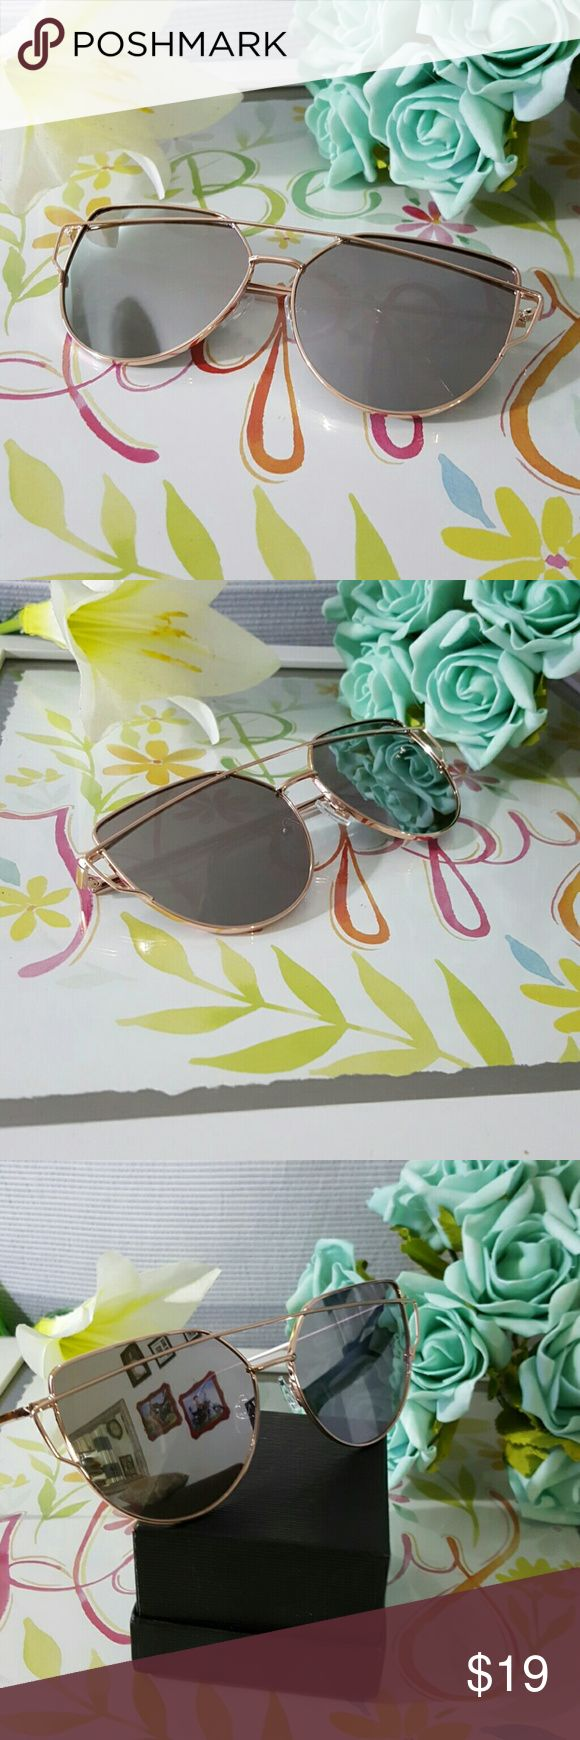 HIGH QUALITY CAT EYE MIRROR VINTAGE  SUNGLASSES GOLD FRAME SILVER LENS  HIGH QUALITY CAT EYE MIRROR VINTAGE  SUNGLASSES Cat eye Women Sunglasses 2017 New Brand Design Mirror Flat Rose Gold Vintage Cateye Fashion sun glasses lady Eyewear  52mm   ALSO AVAILABLE IN MY CLOSET. LATEX WAIST TRAINER NEOPRENE CONTROL CINCHER VEST CORSET BUTT LIFTER PADDED PANTY SWIMSUIT WOMAN MEN SUNGLASSES SILICONE BRA ADHESIVE NIPPLE COVERS PHONE Accessories Sunglasses